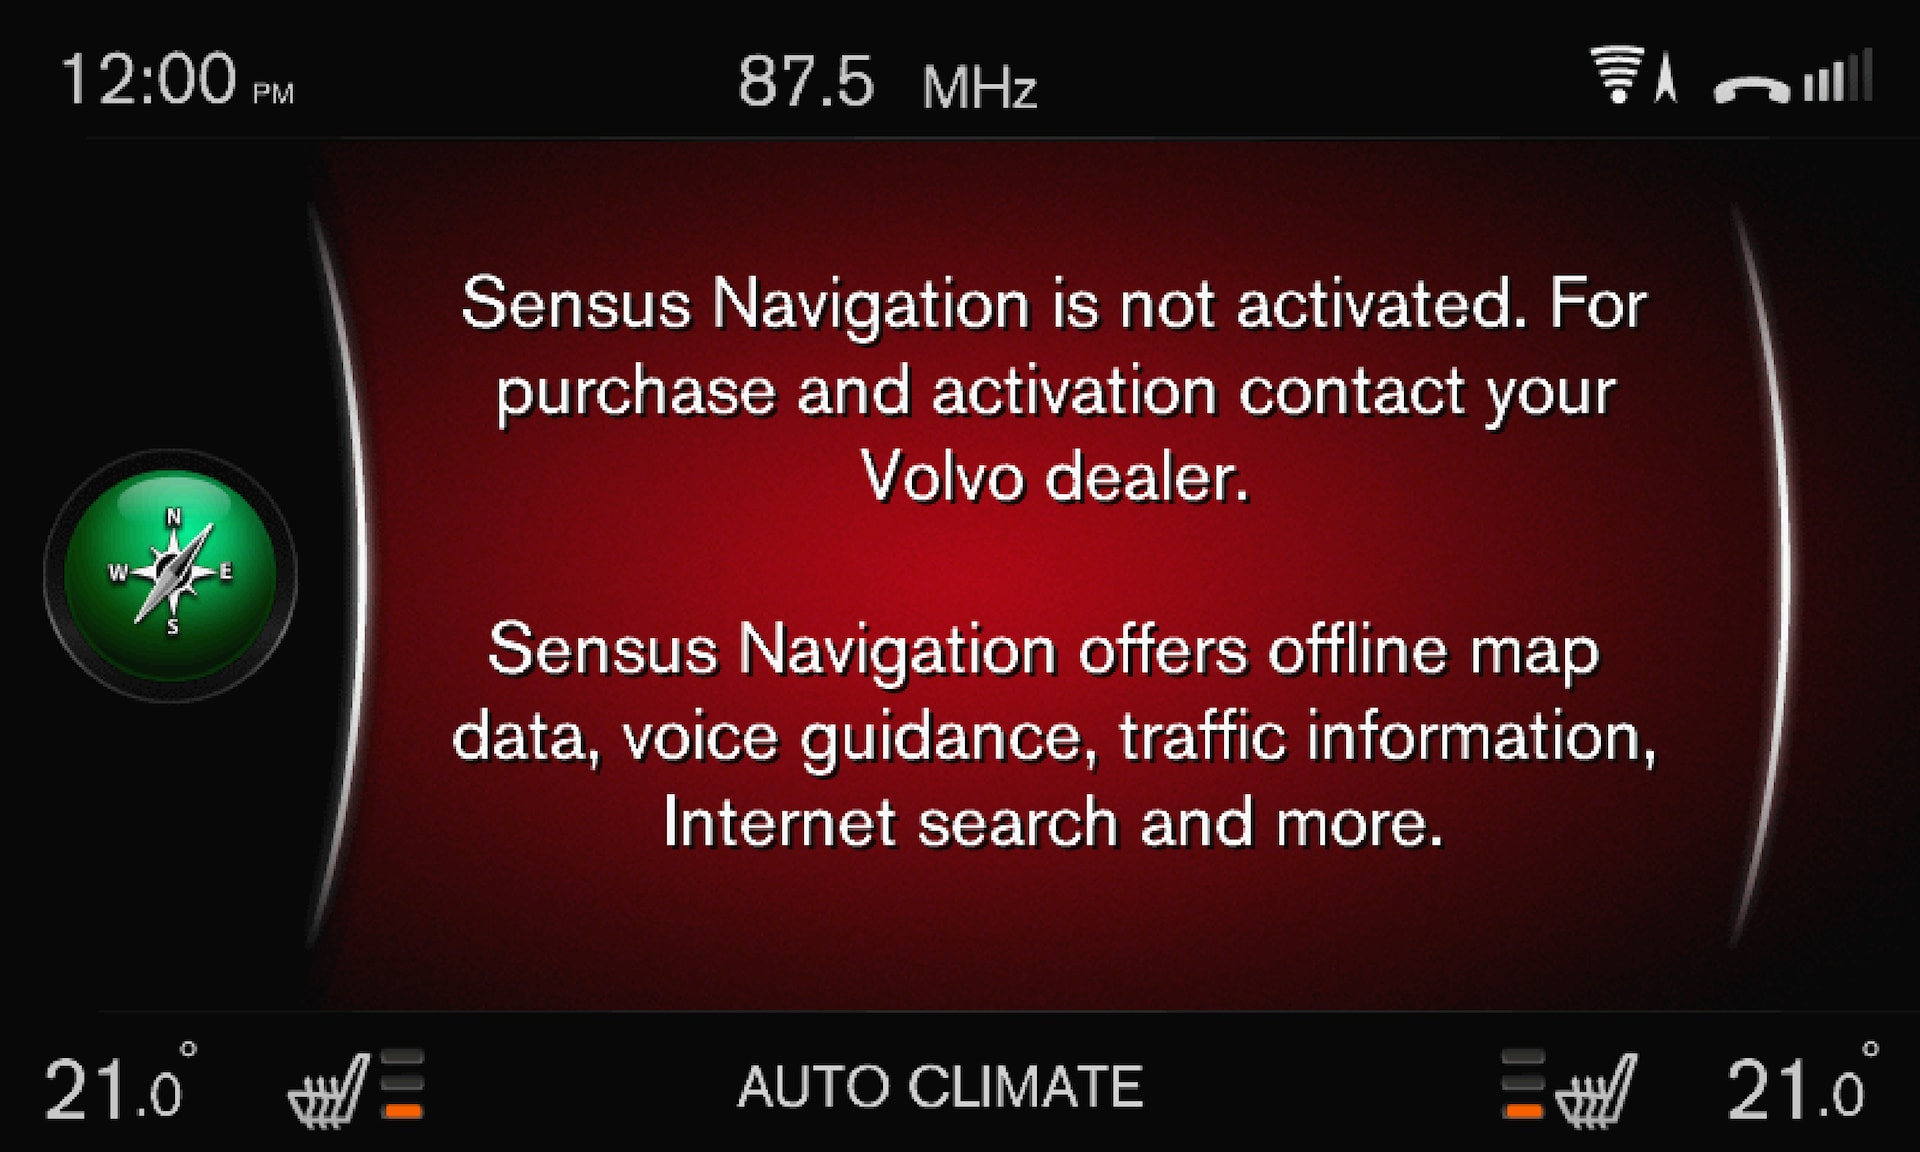 P3/P4 - Support site - Information about Sensus Navigation purchase and activation